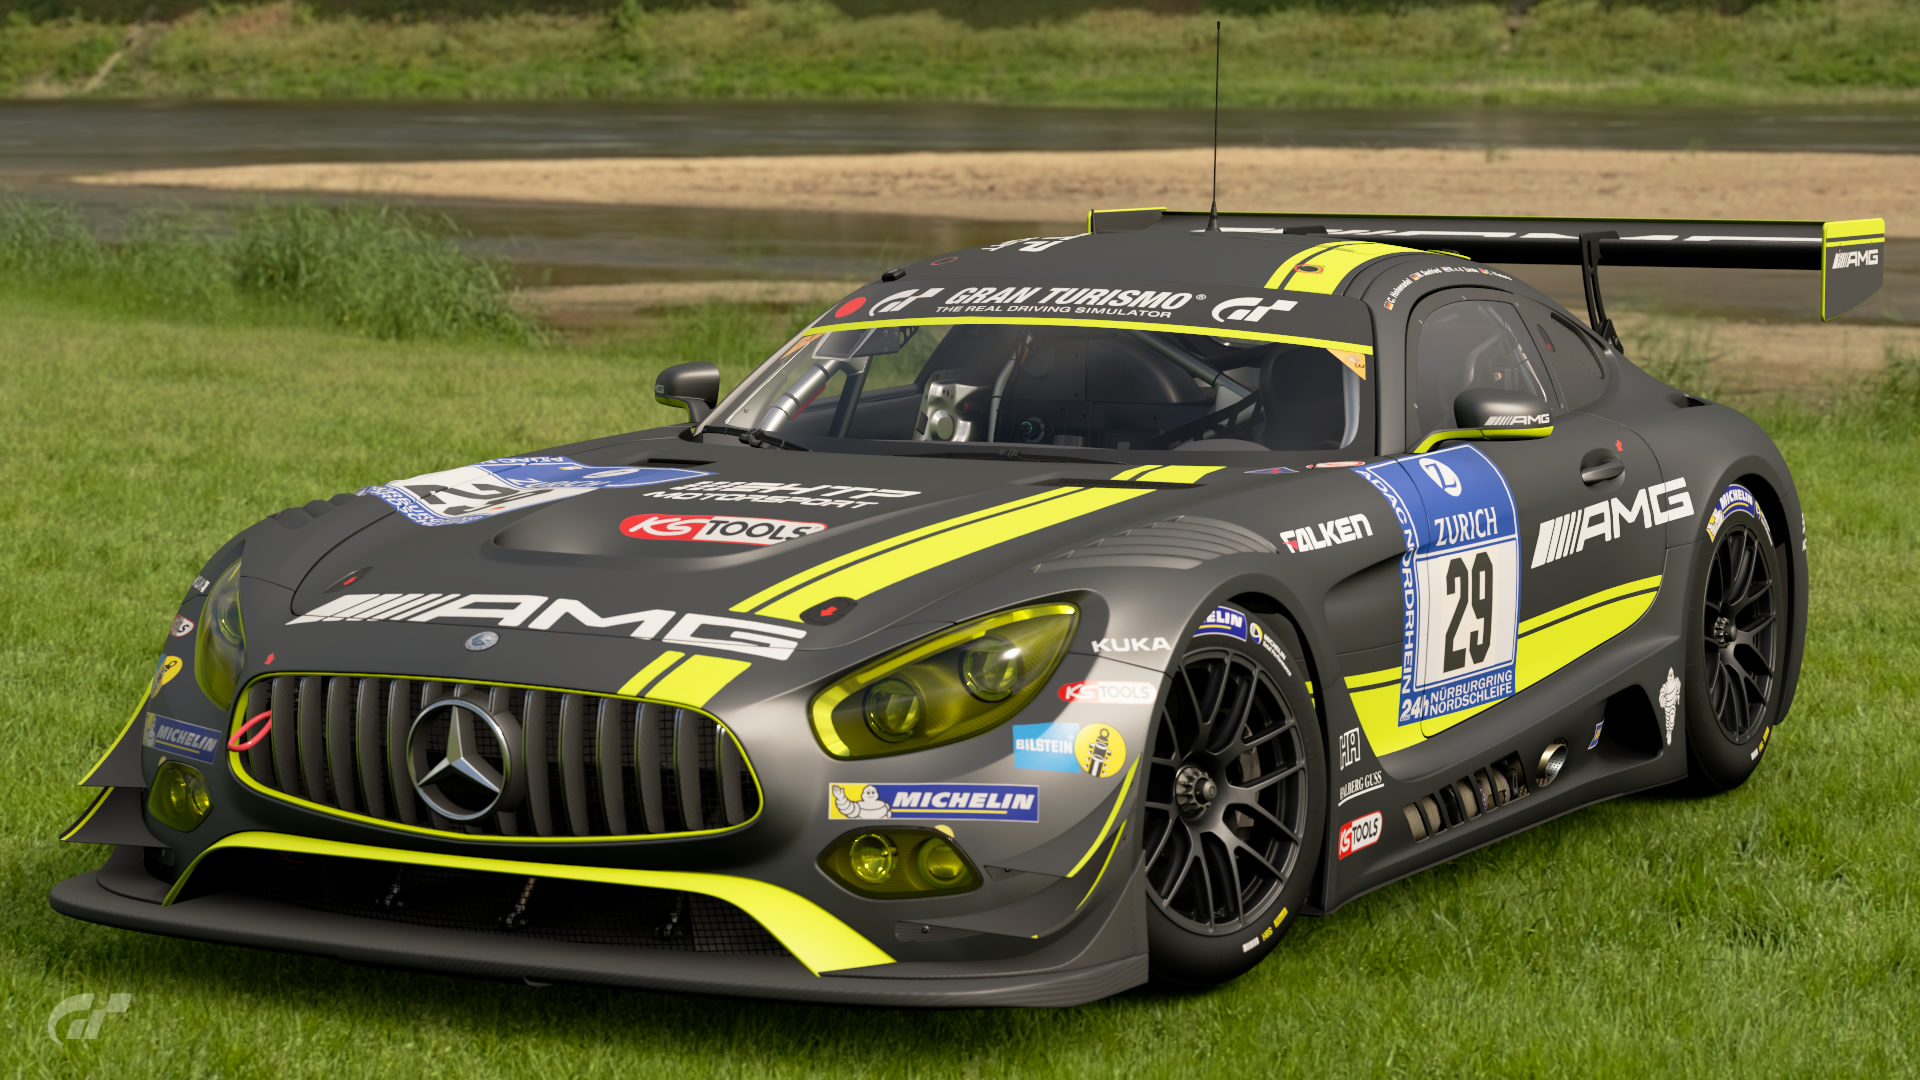 mercedes amg gt3 amg team htp motorsport 39 16 gran turismo wiki fandom powered by wikia. Black Bedroom Furniture Sets. Home Design Ideas